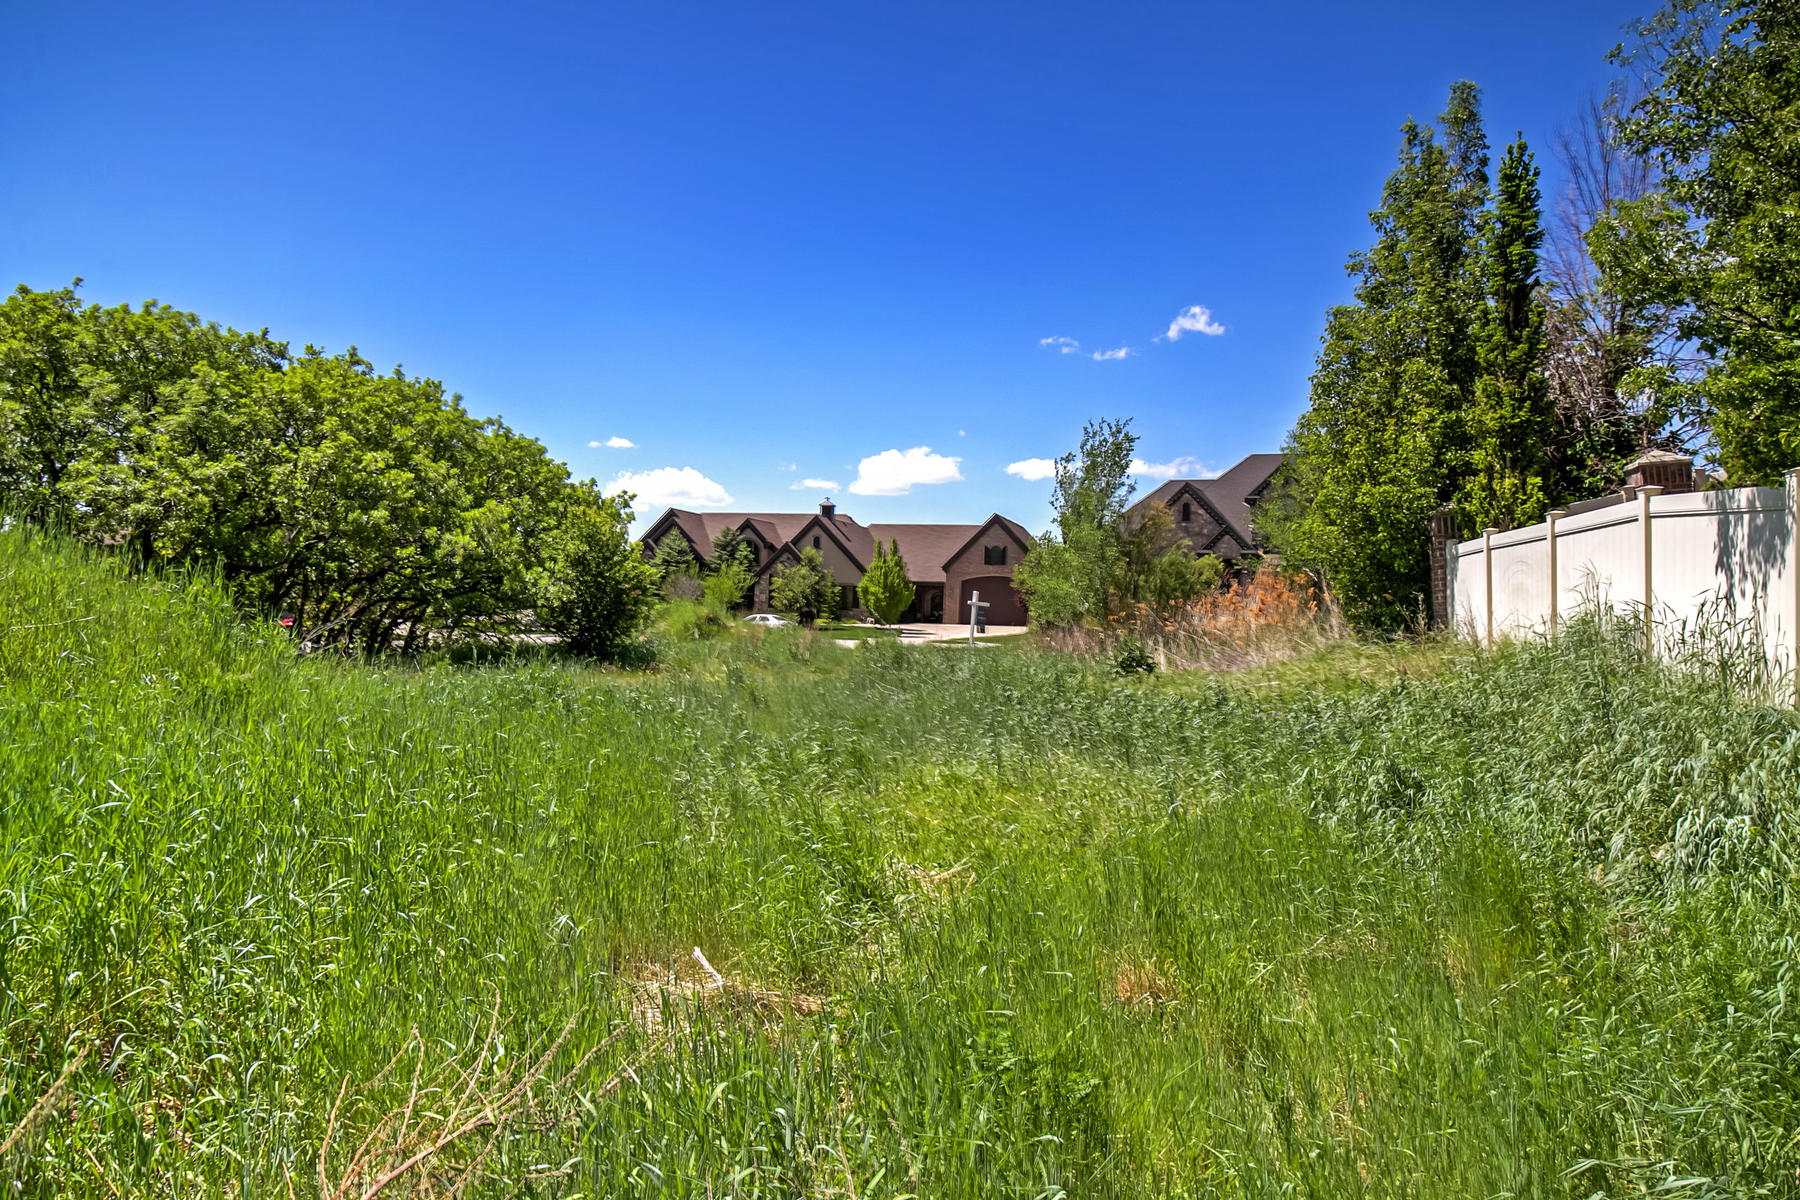 Additional photo for property listing at Unobstructed Mountain and Valley Views 5966 South 1055 East Lot 2 South Ogden, Utah 84405 United States